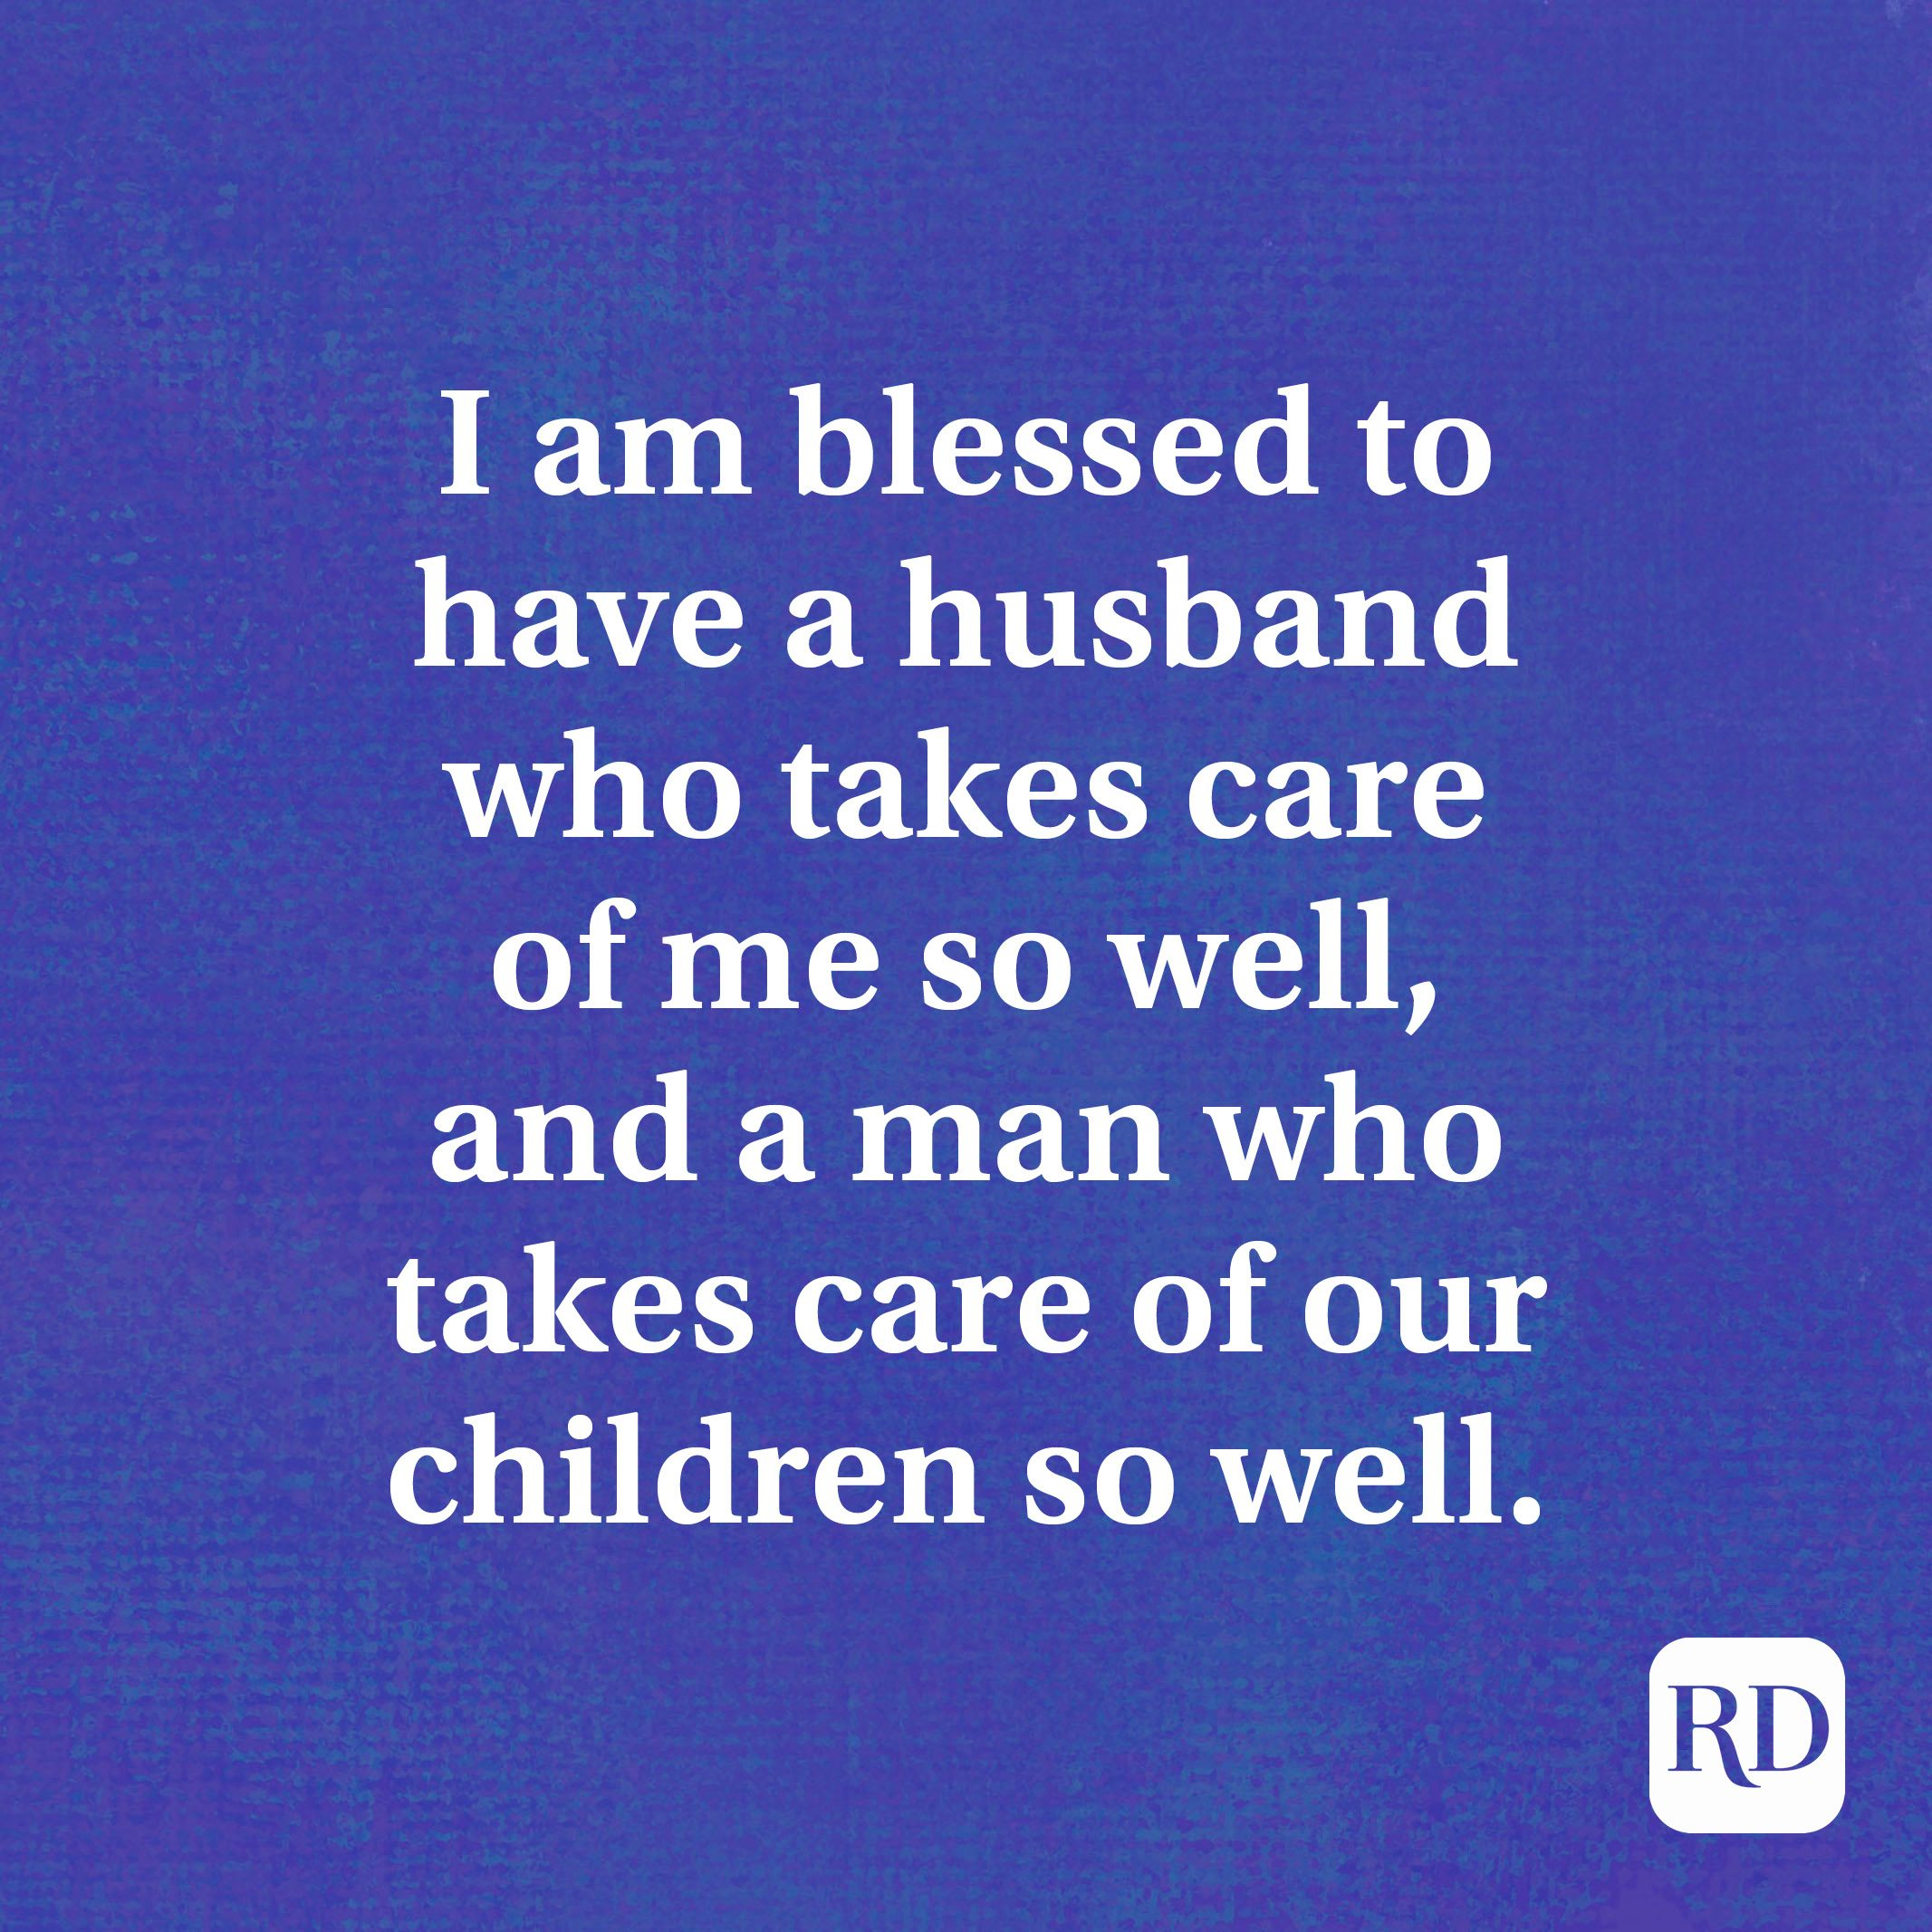 I am blessed to have a husband who takes care of me so well, and a man who takes care of our children so well.